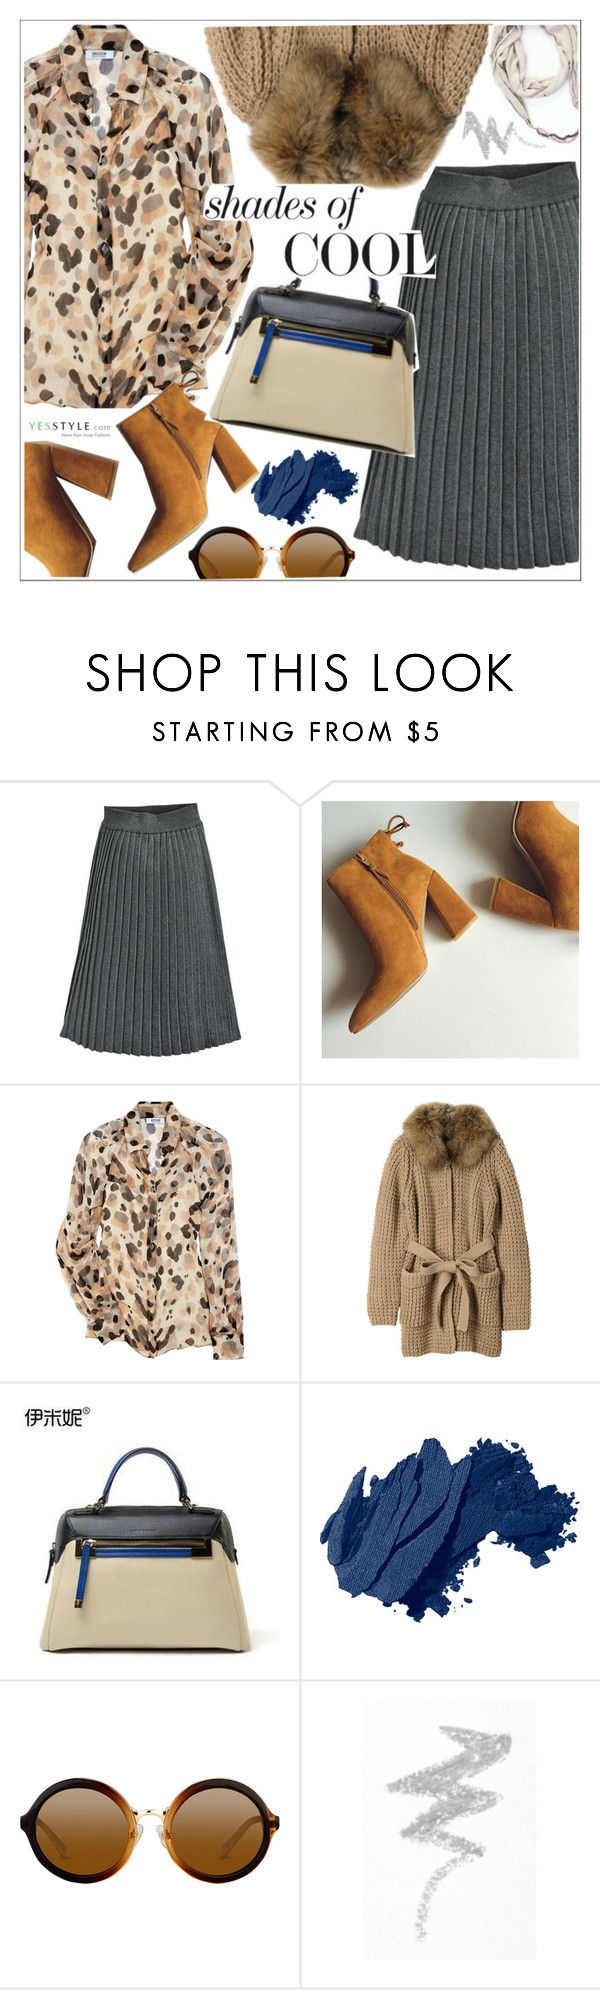 """""""YesStyle - 10% off coupon"""" by teoecar ❤ liked on Polyvore featuring Moschino Cheap & Chic, Mihoko Saito, Emini House, Bobbi Brown Cosmetics, NYX, yesstyle, prefall and productPageSectionTop"""